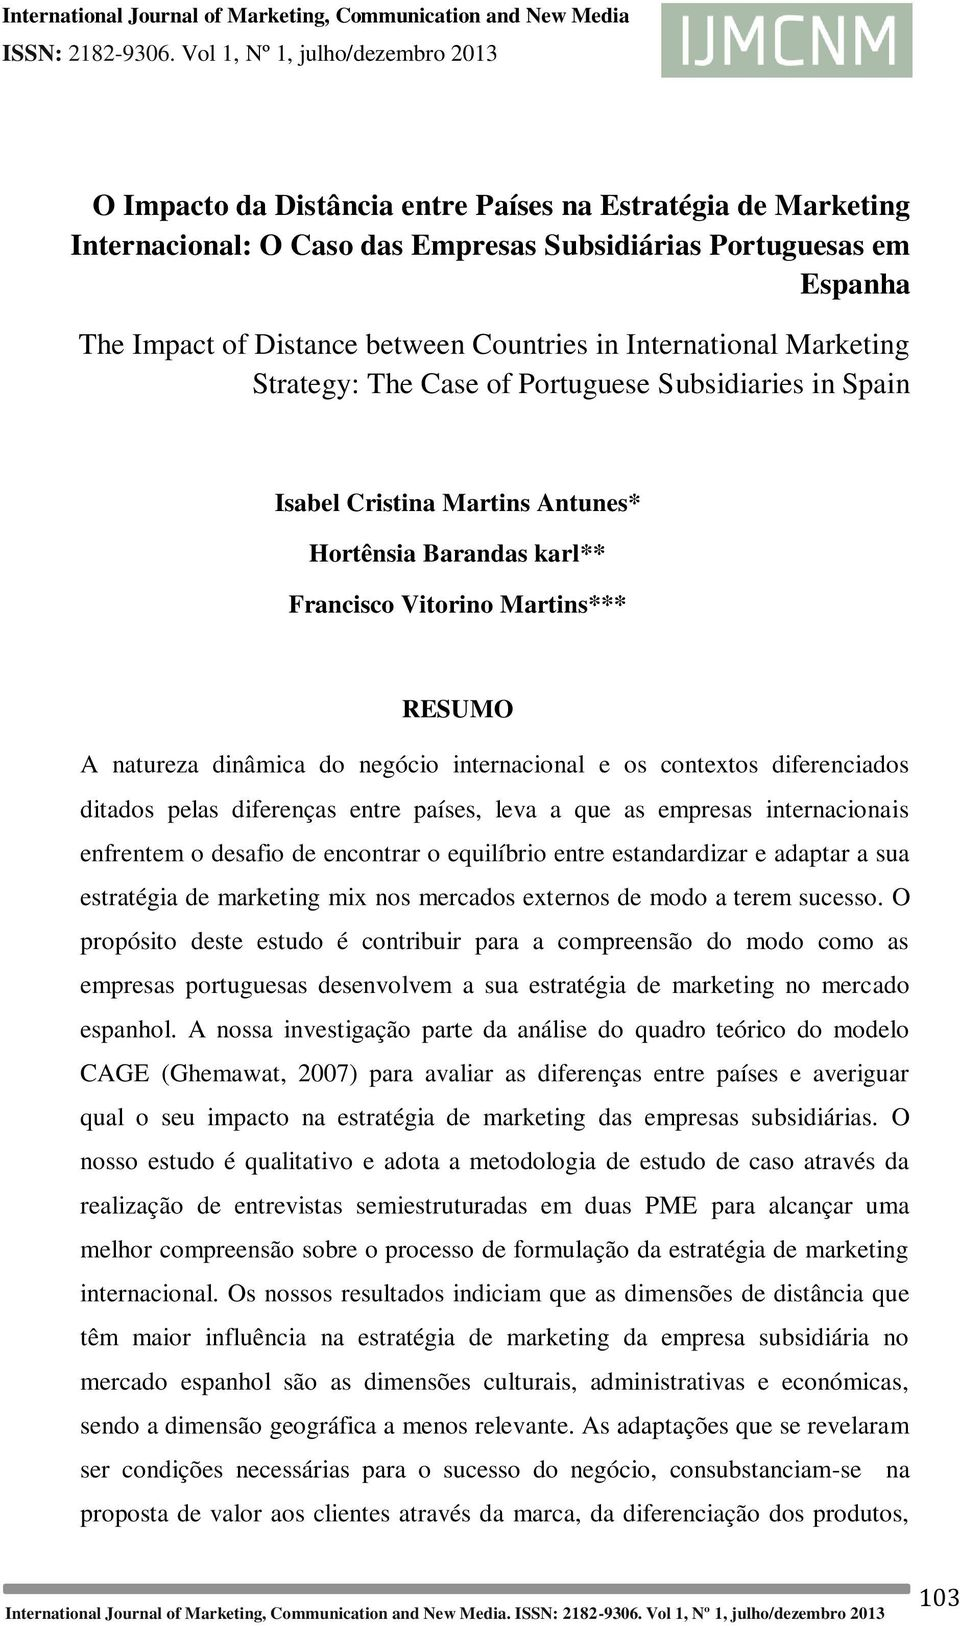 Countries in International Marketing Strategy: The Case of Portuguese Subsidiaries in Spain Isabel Cristina Martins Antunes* Hortênsia Barandas karl** Francisco Vitorino Martins*** RESUMO A natureza